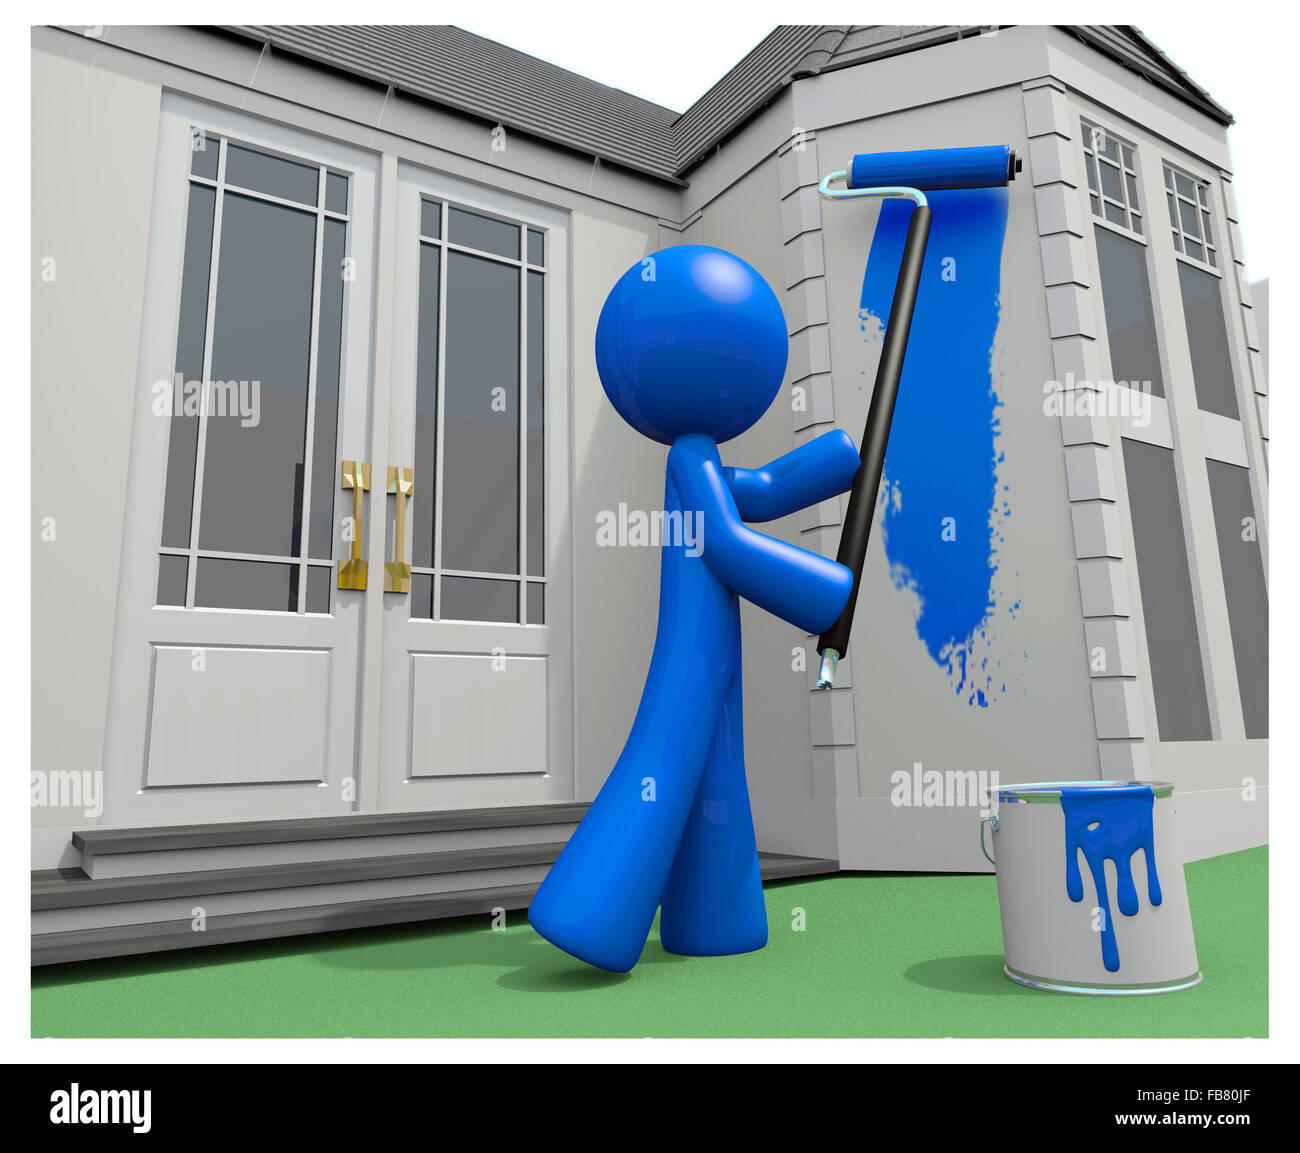 Wonderful Blue Man Painting His House, 3d